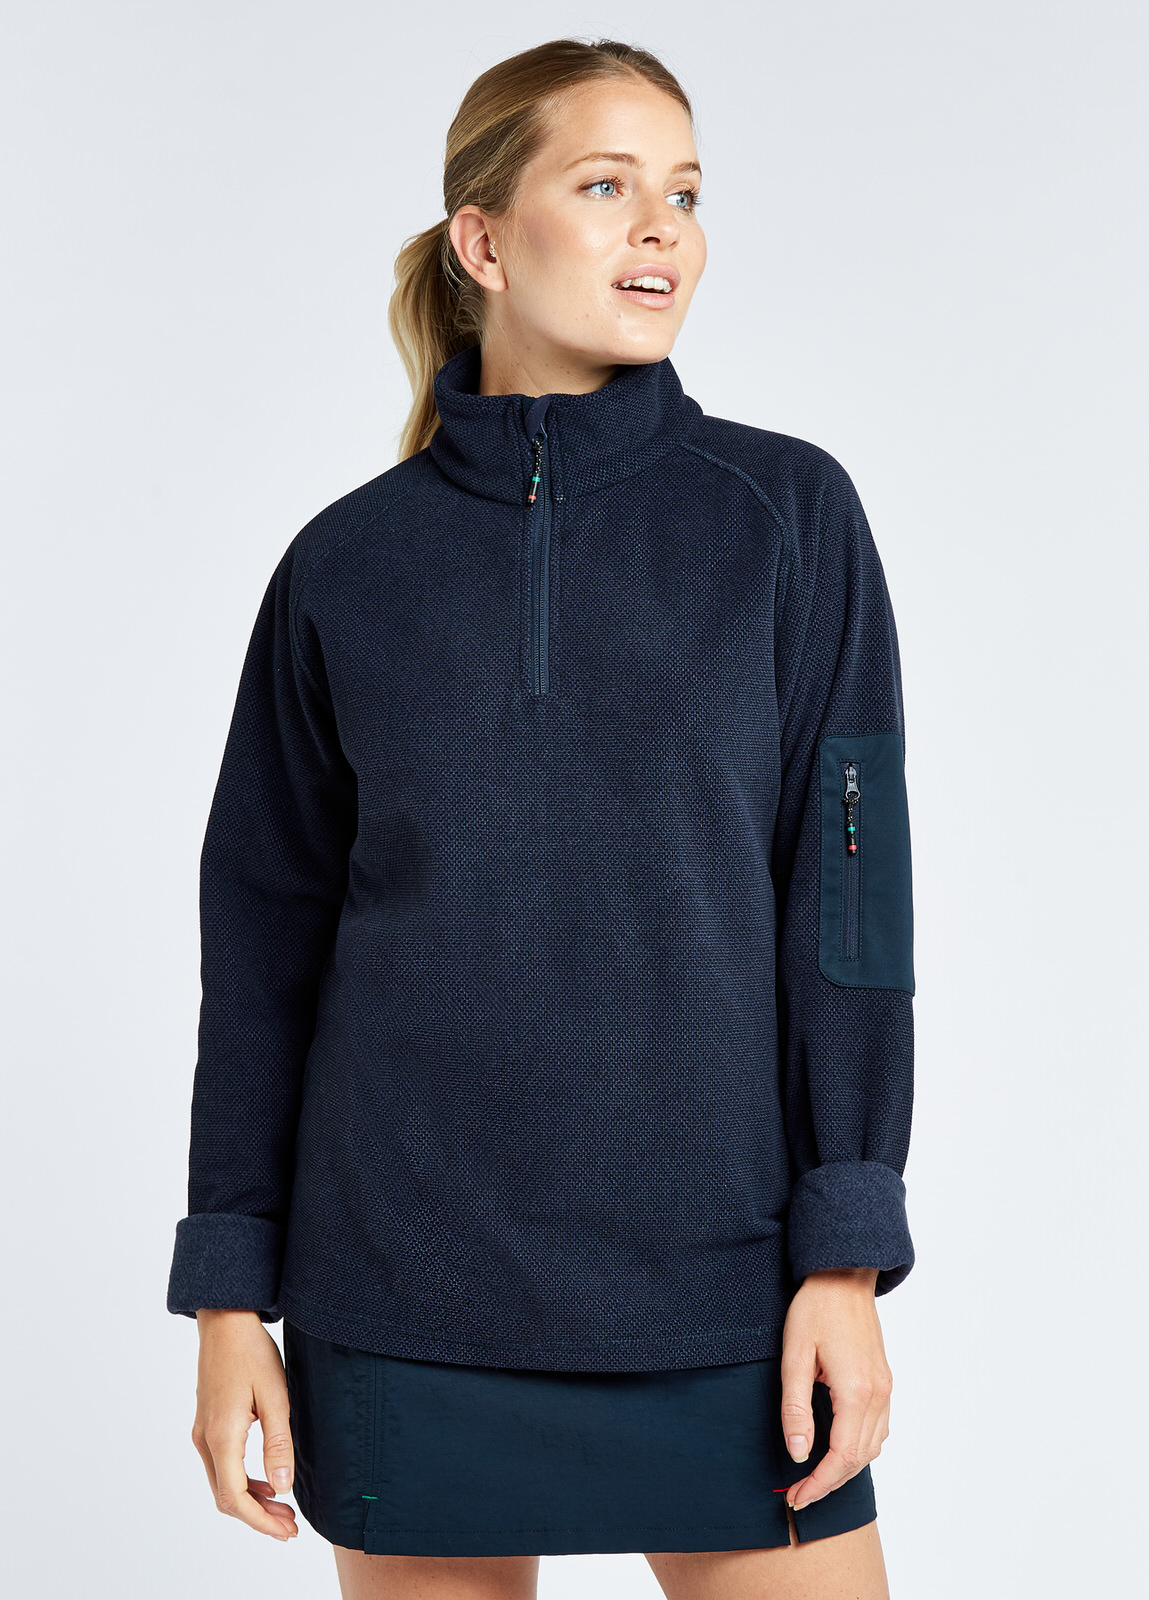 Monaco Unisex Quarter-zip Fleece - Navy